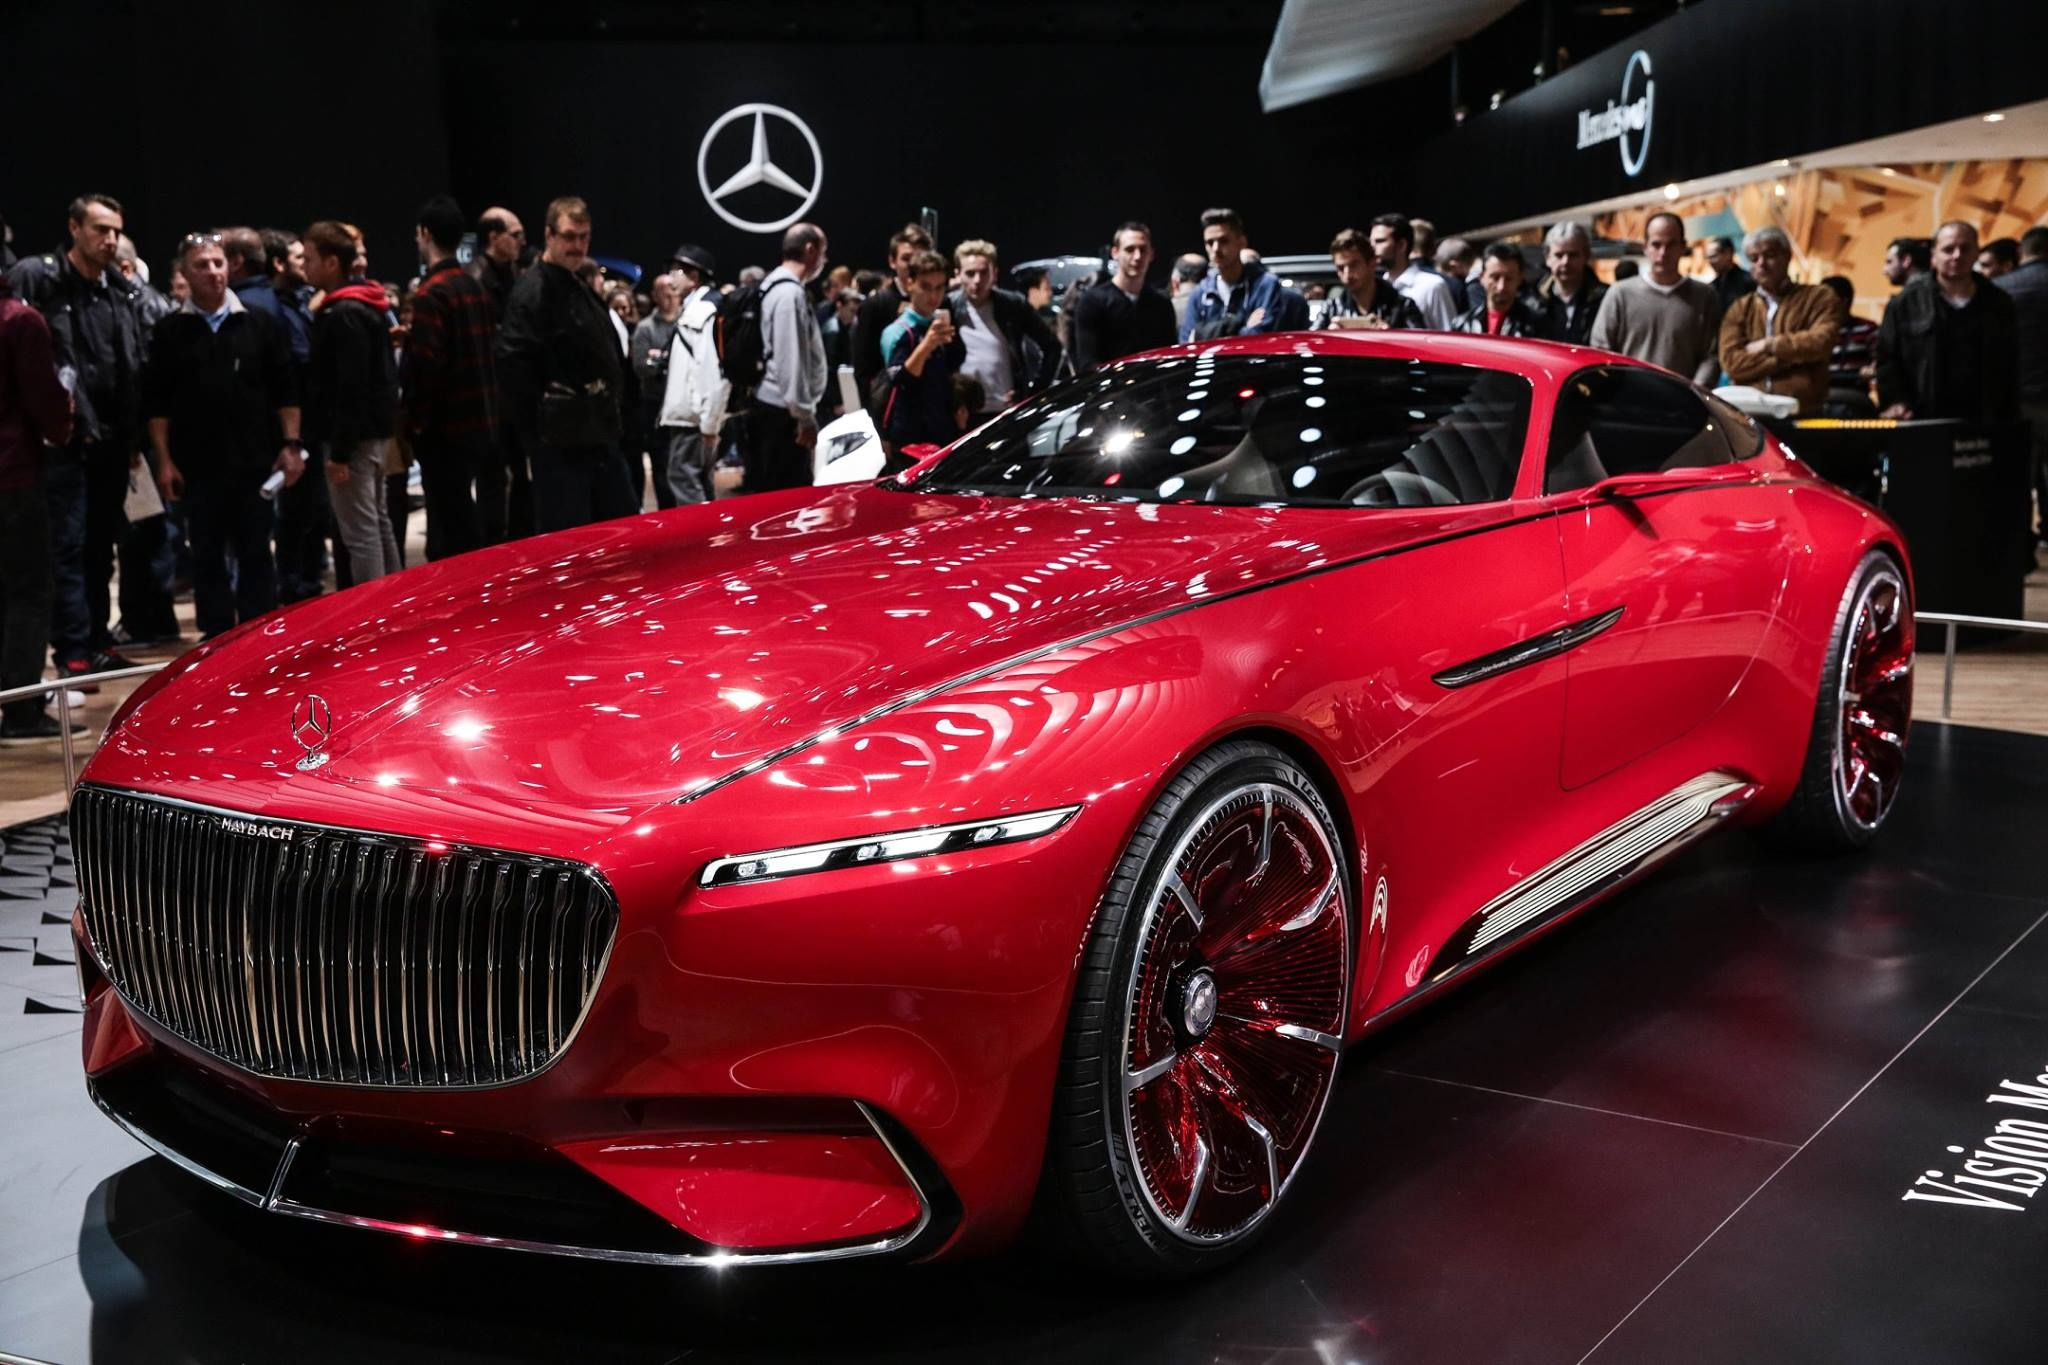 Mercedes MAYBACH 6 #MondialAuto